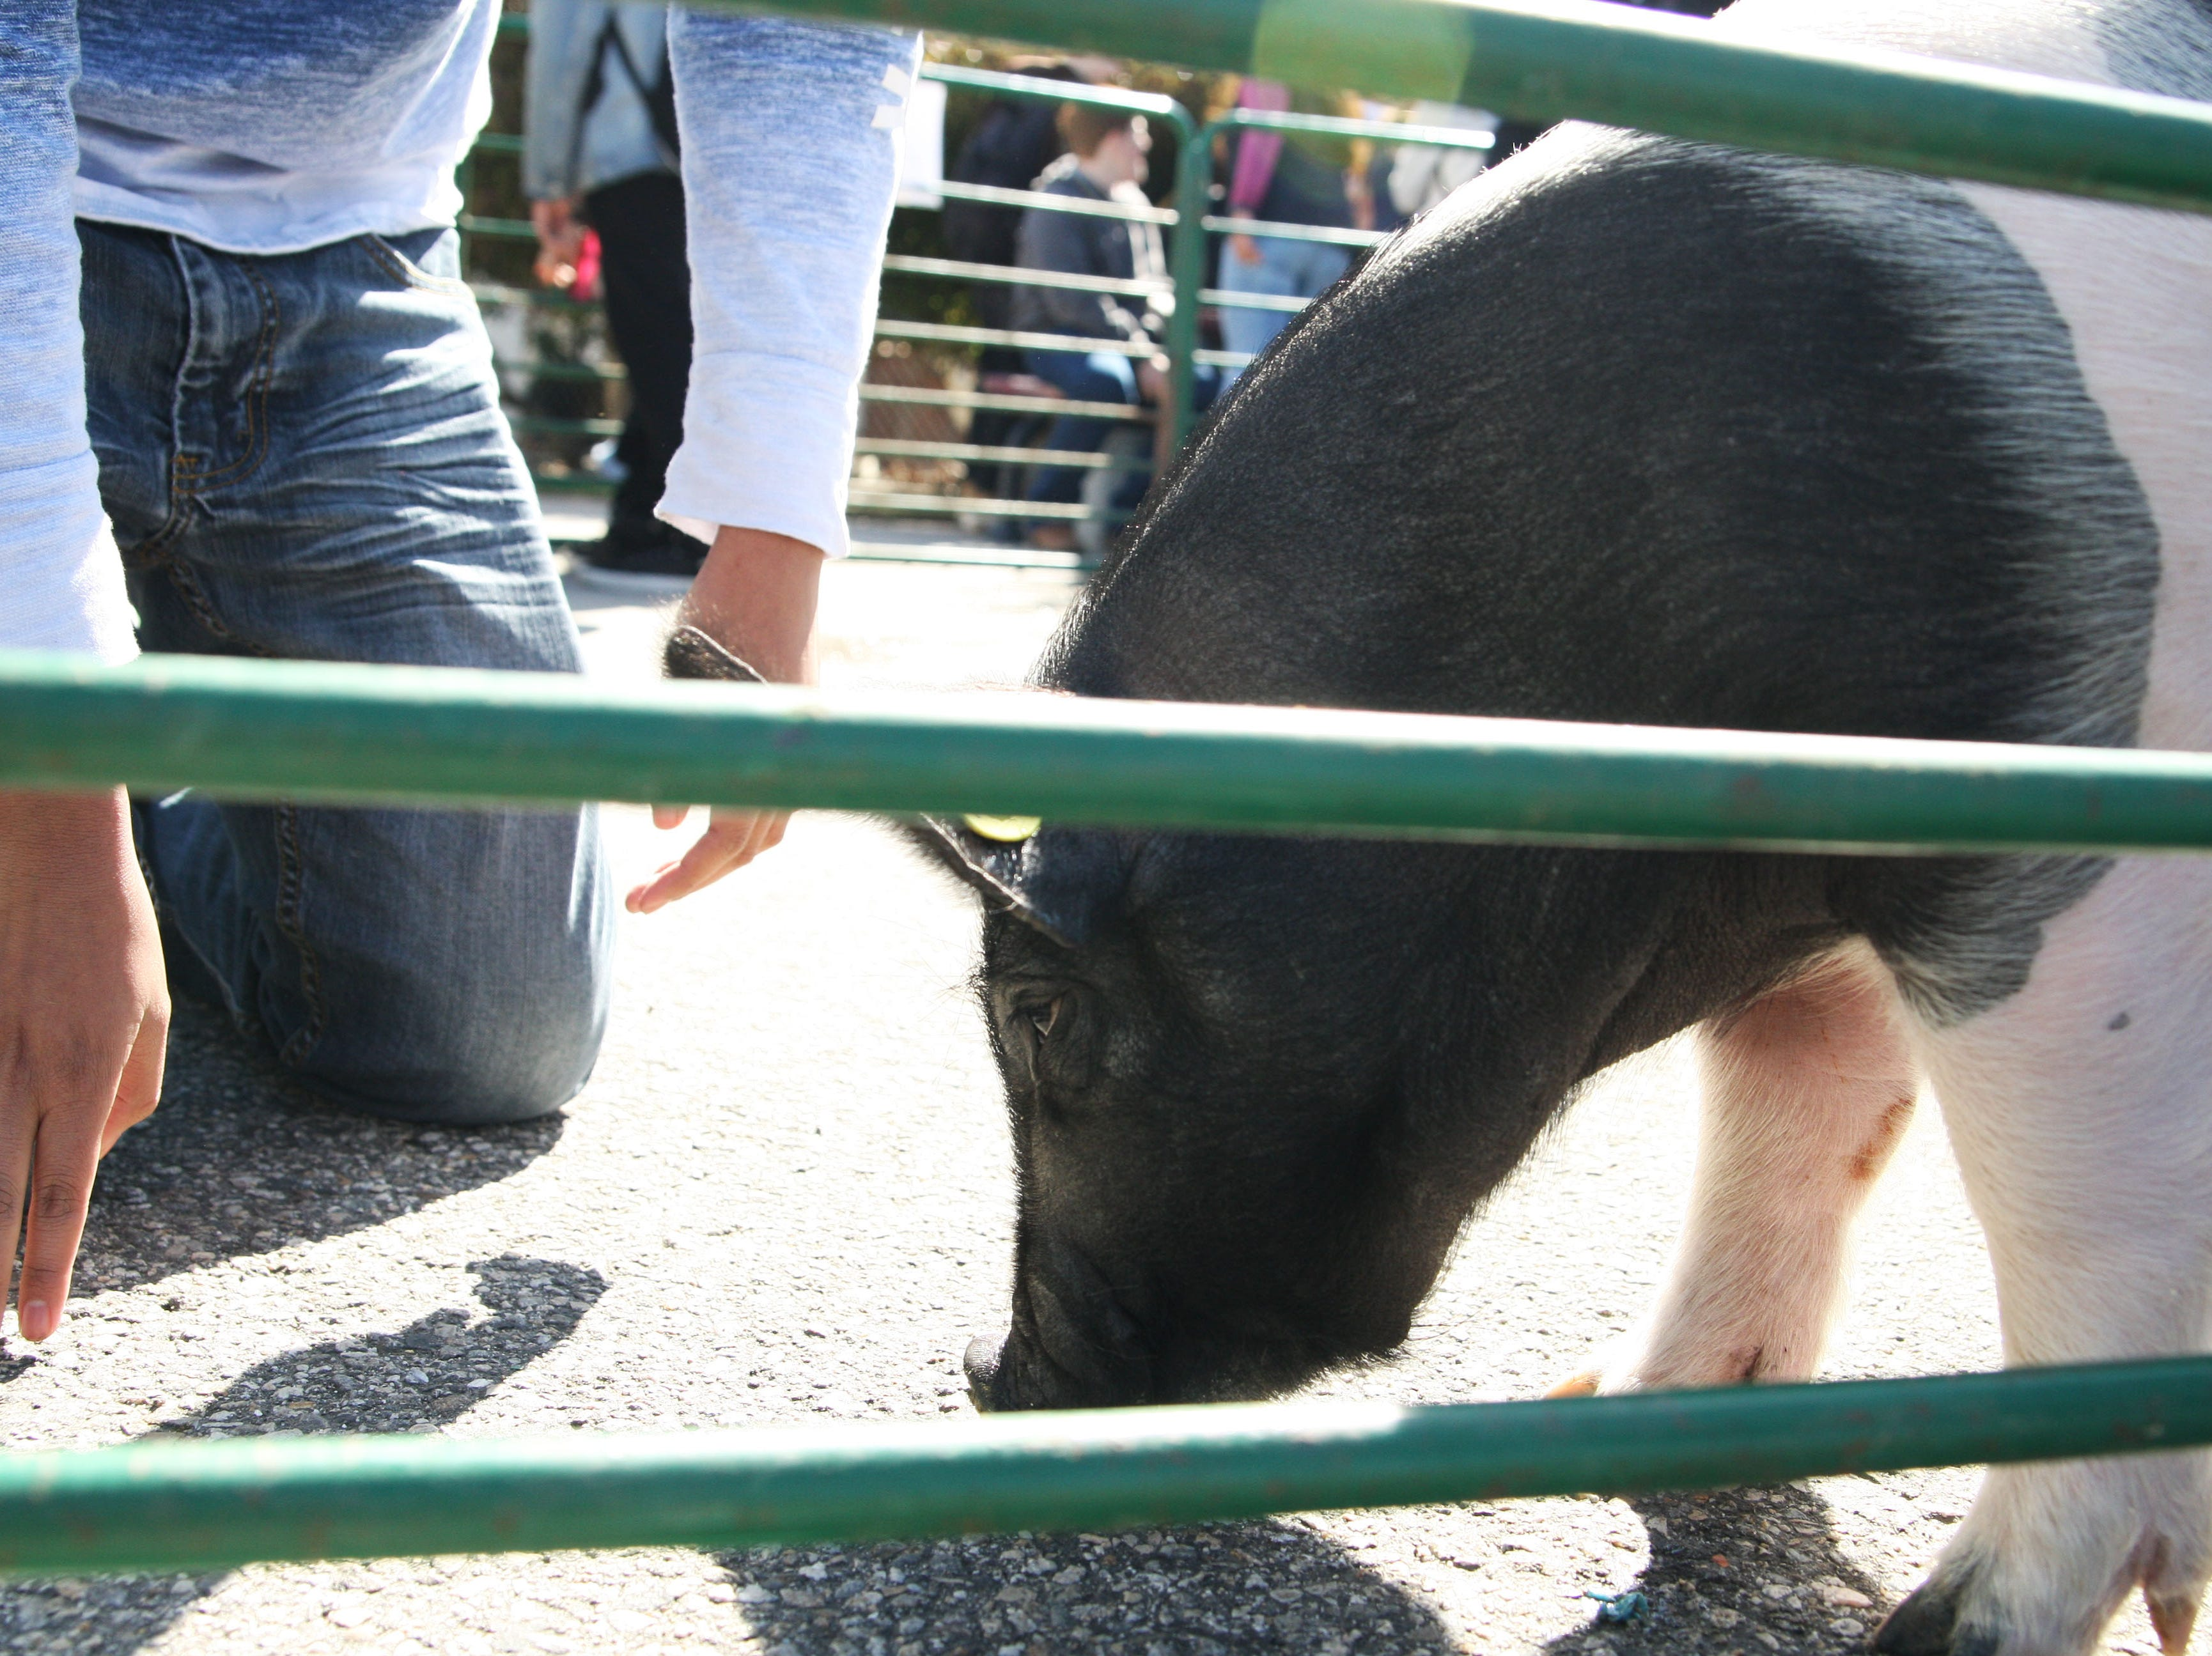 One of the students attempts to hang out near a pig.